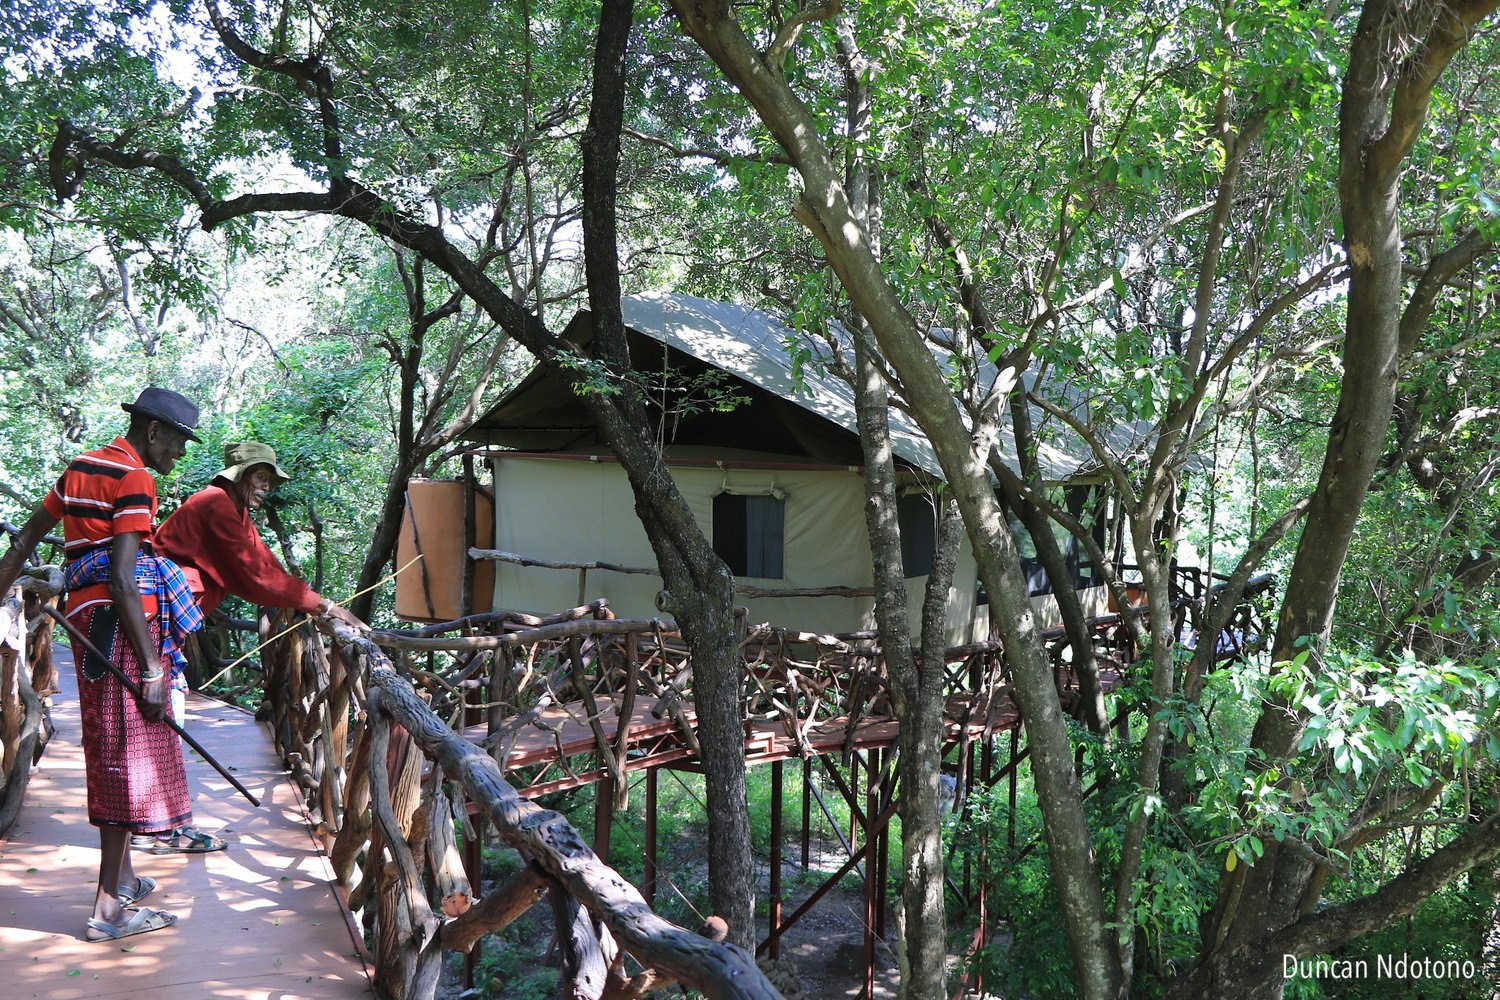 The Rhino Boma is made up of eight tree houses and is able to host 16 guests